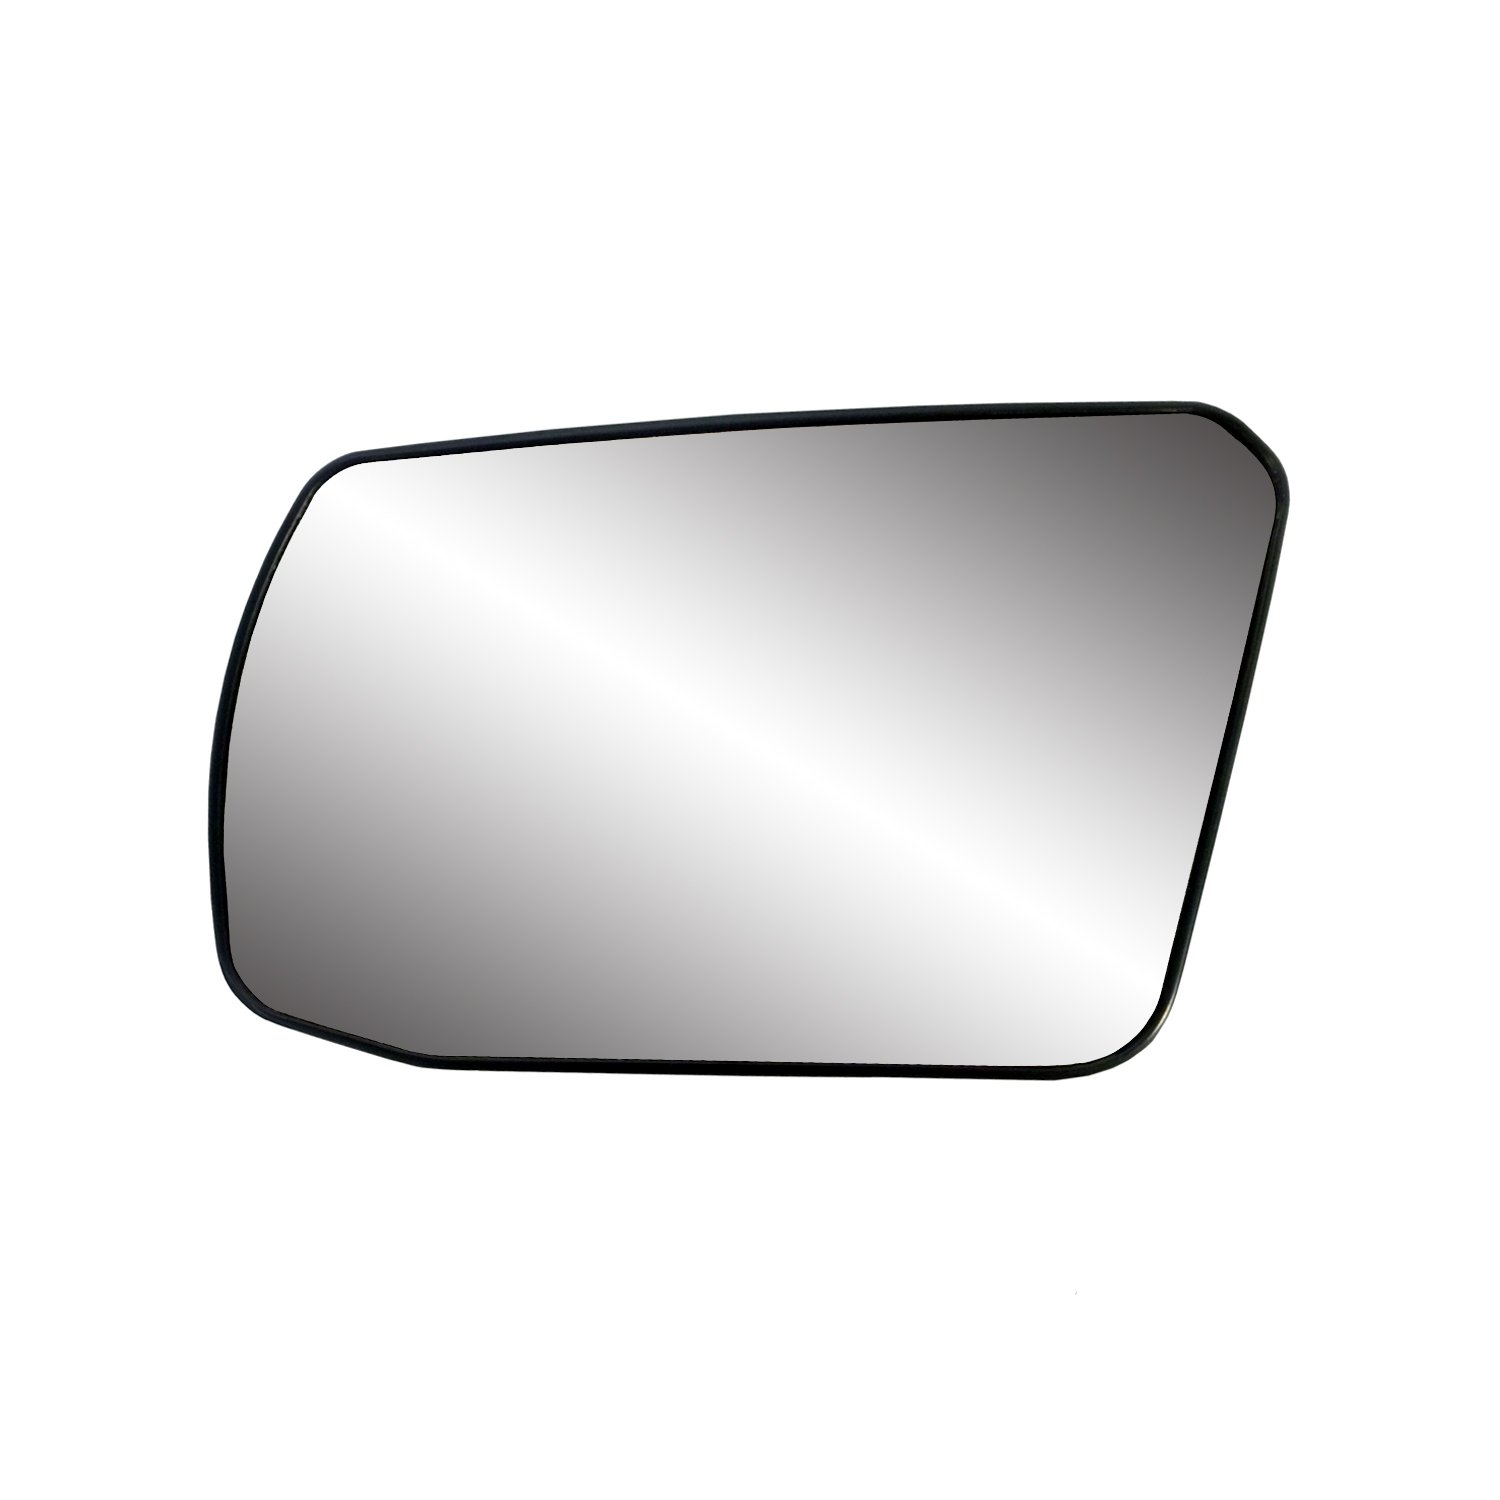 Fit System 88214 Nissan Altima 2.5-Litre Engine Coupe/Sedan Left Side Power Non-Foldaway Replacement Mirror Glass with Backing Plate